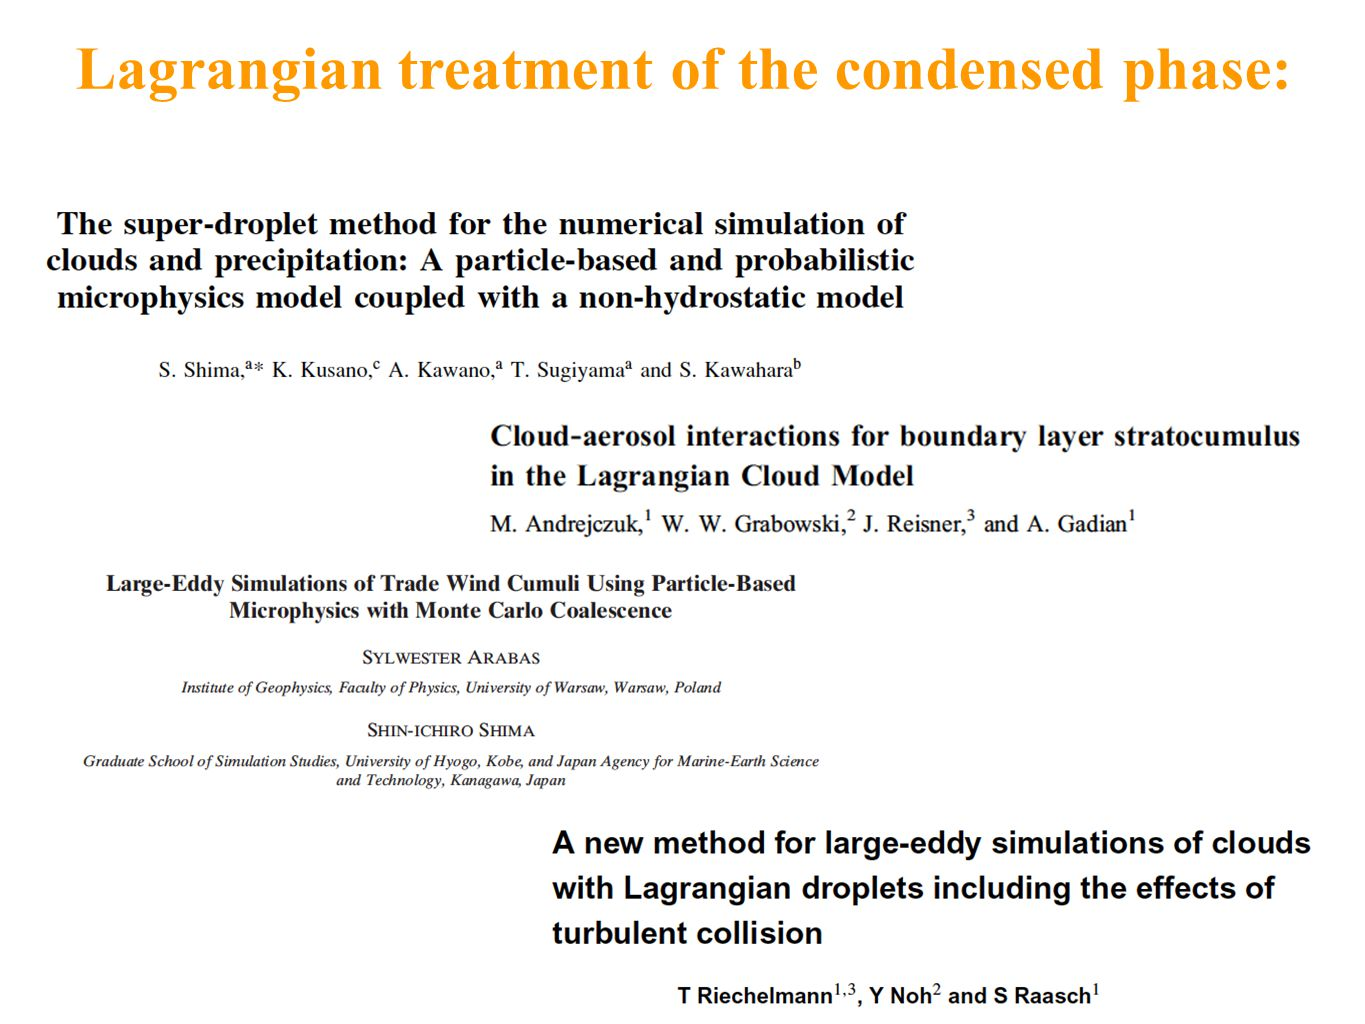 Lagrangian treatment of the condensed phase: